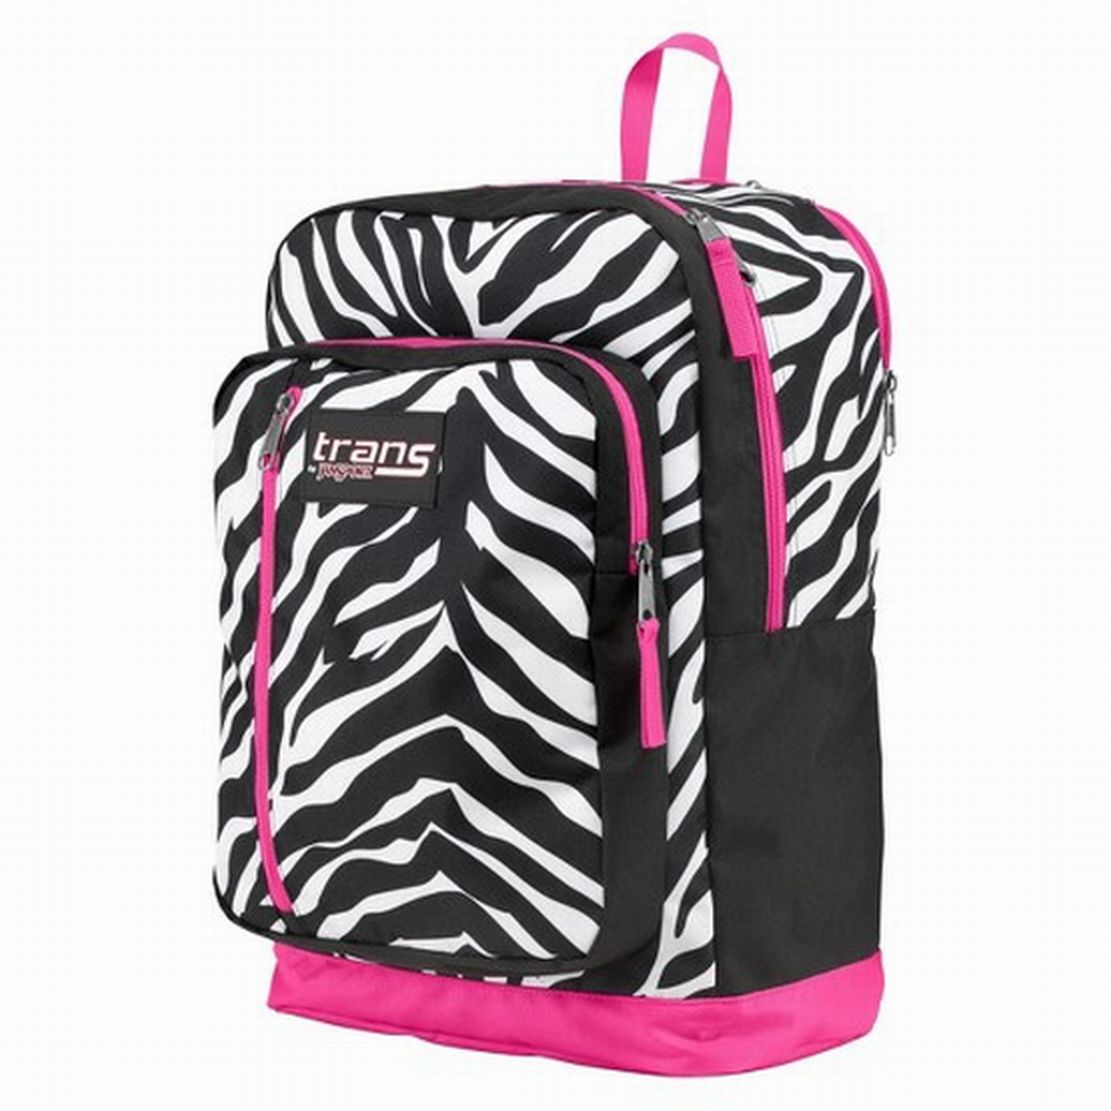 Trans by Jansport Overexposed Megahertz Backpack Zebra Pattern & Hot Pink Accent